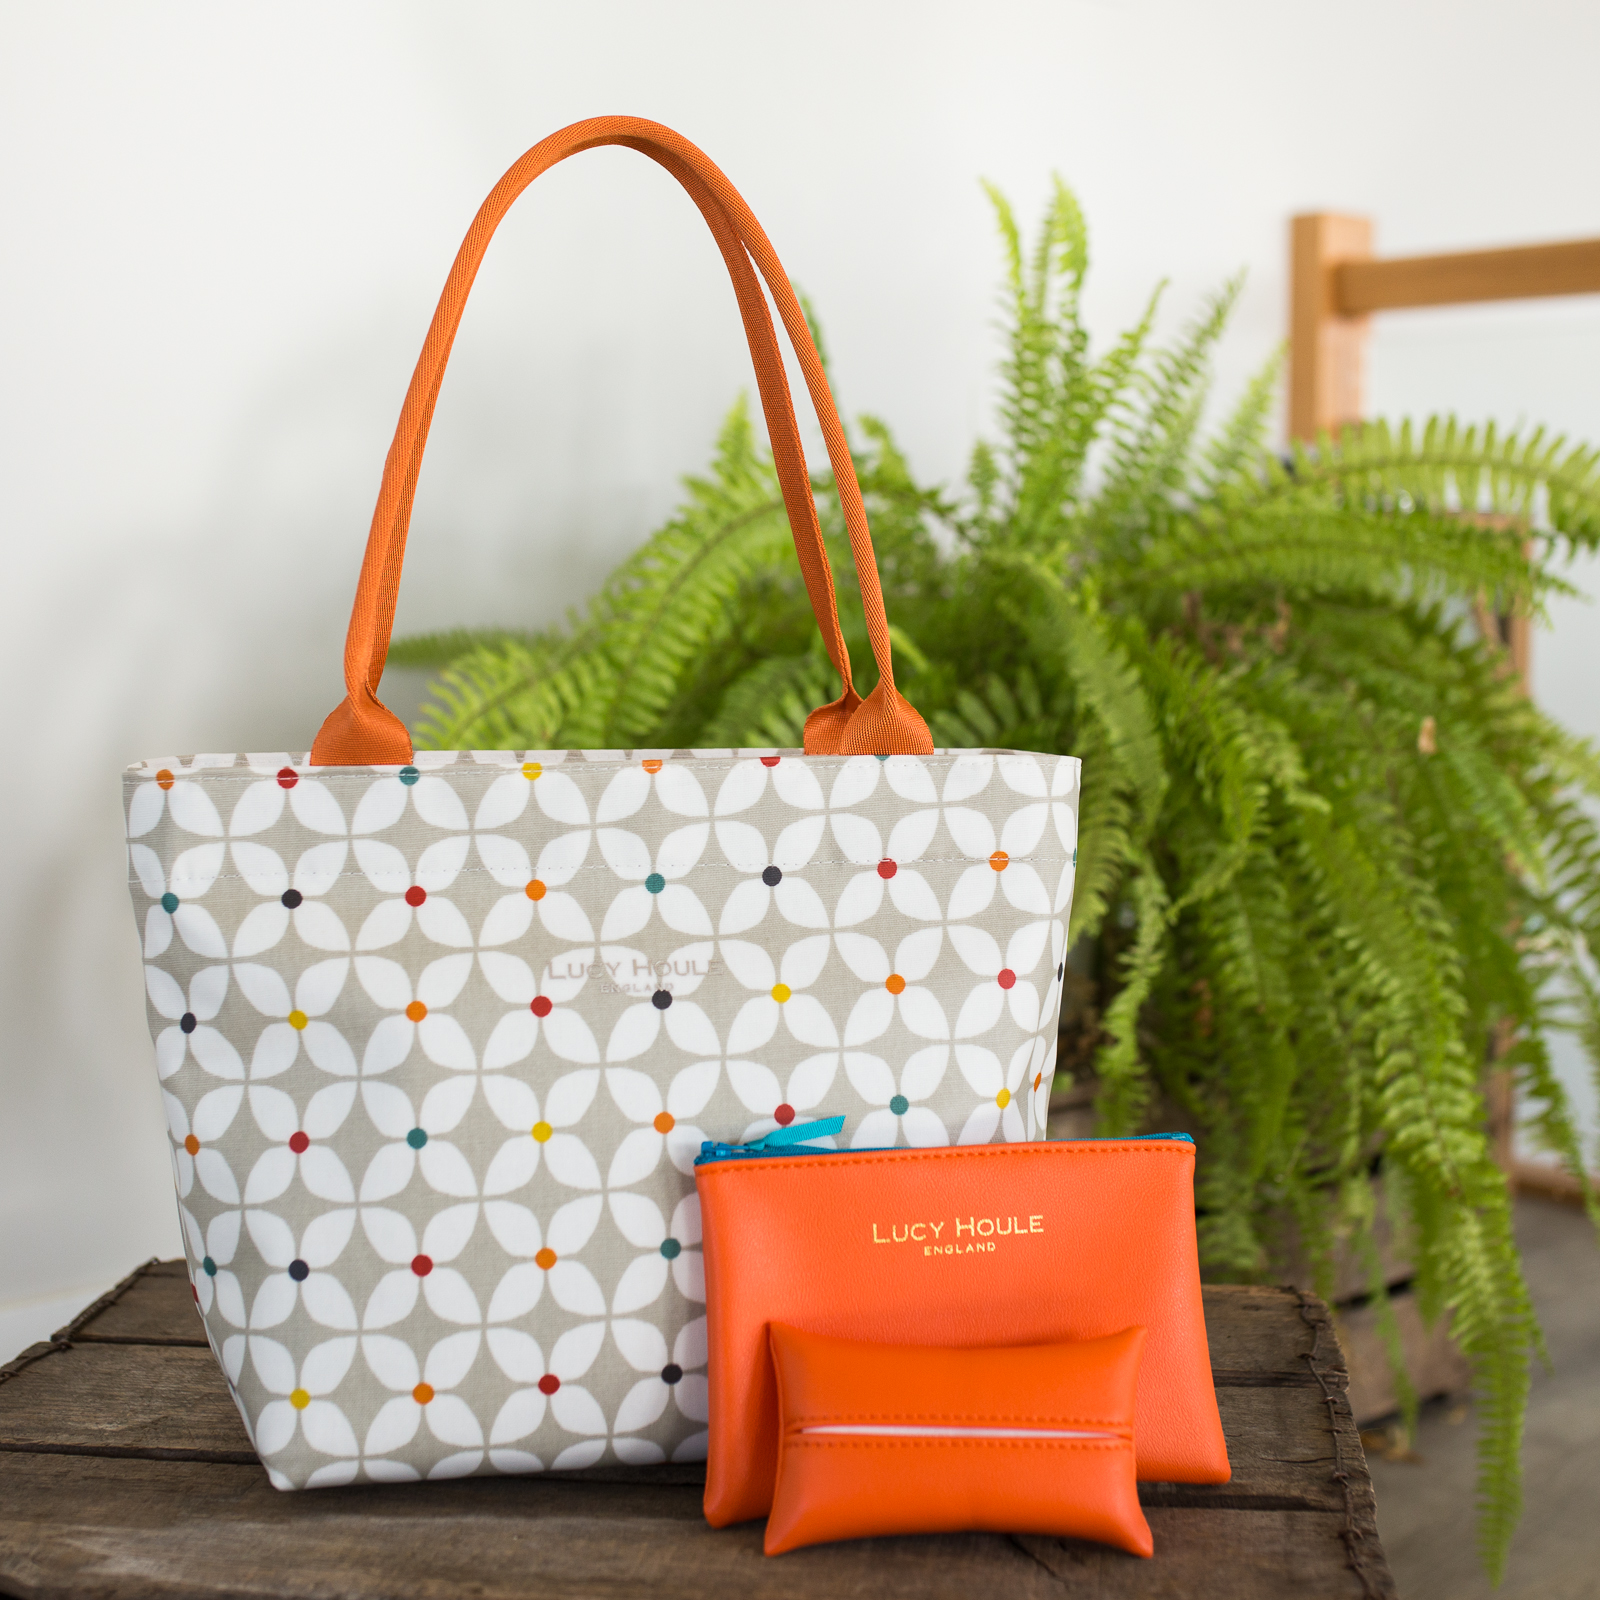 Modern Daisy Taupe Small Zip Tote Bag with Orange Handles